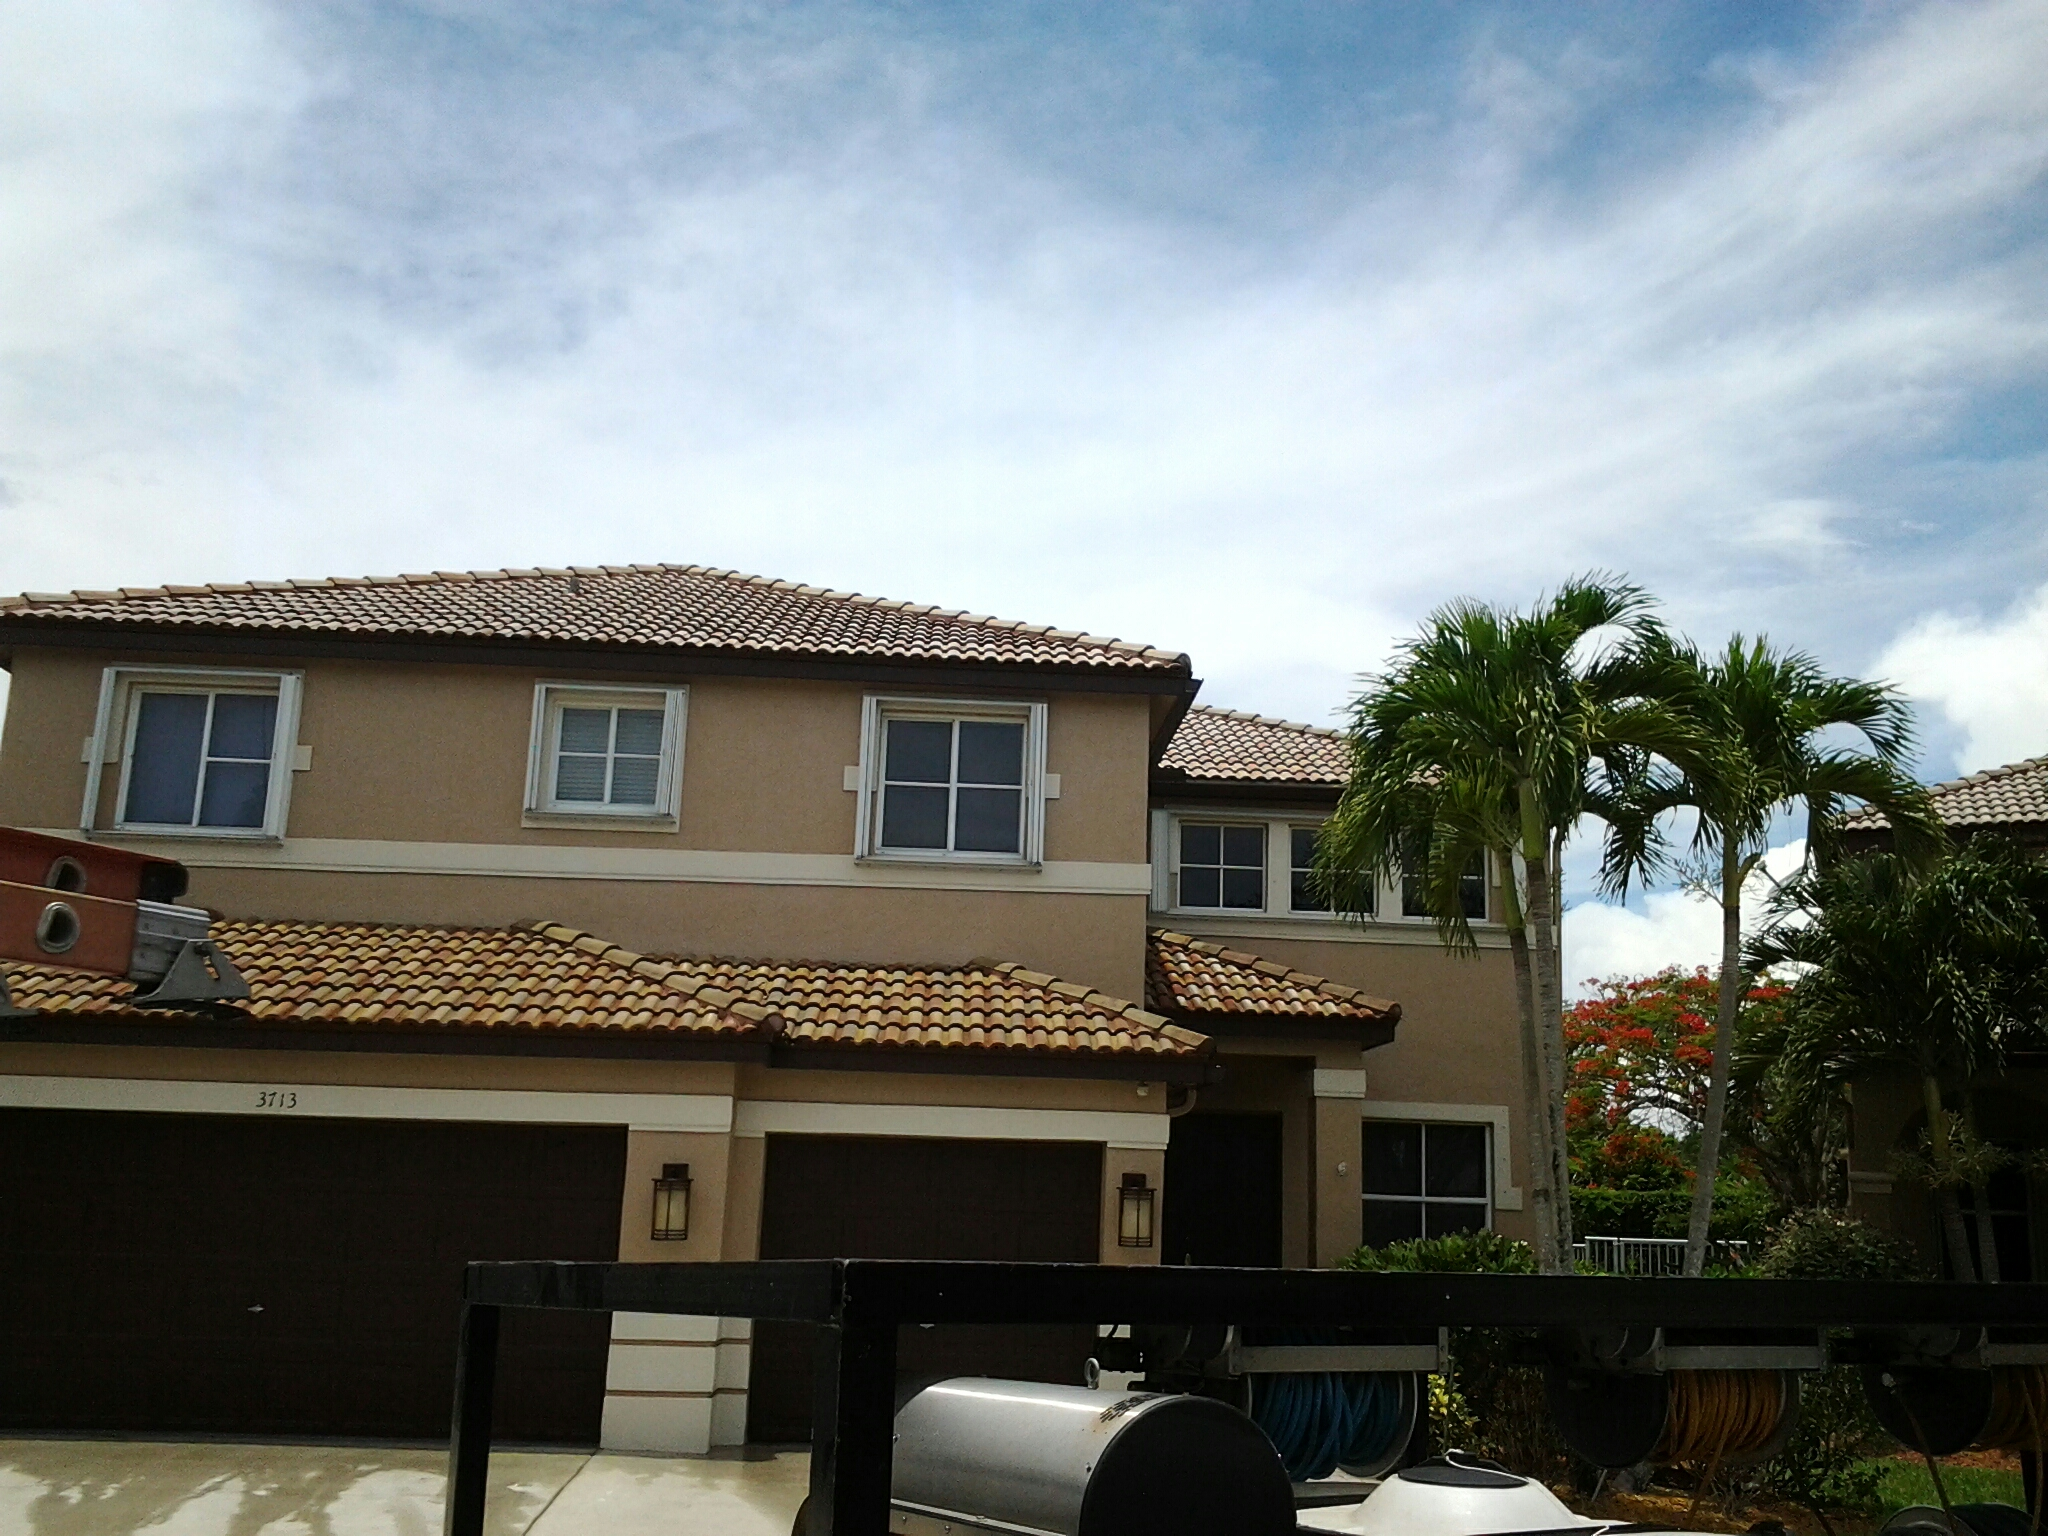 Weston, FL - Clean edges and roofacide